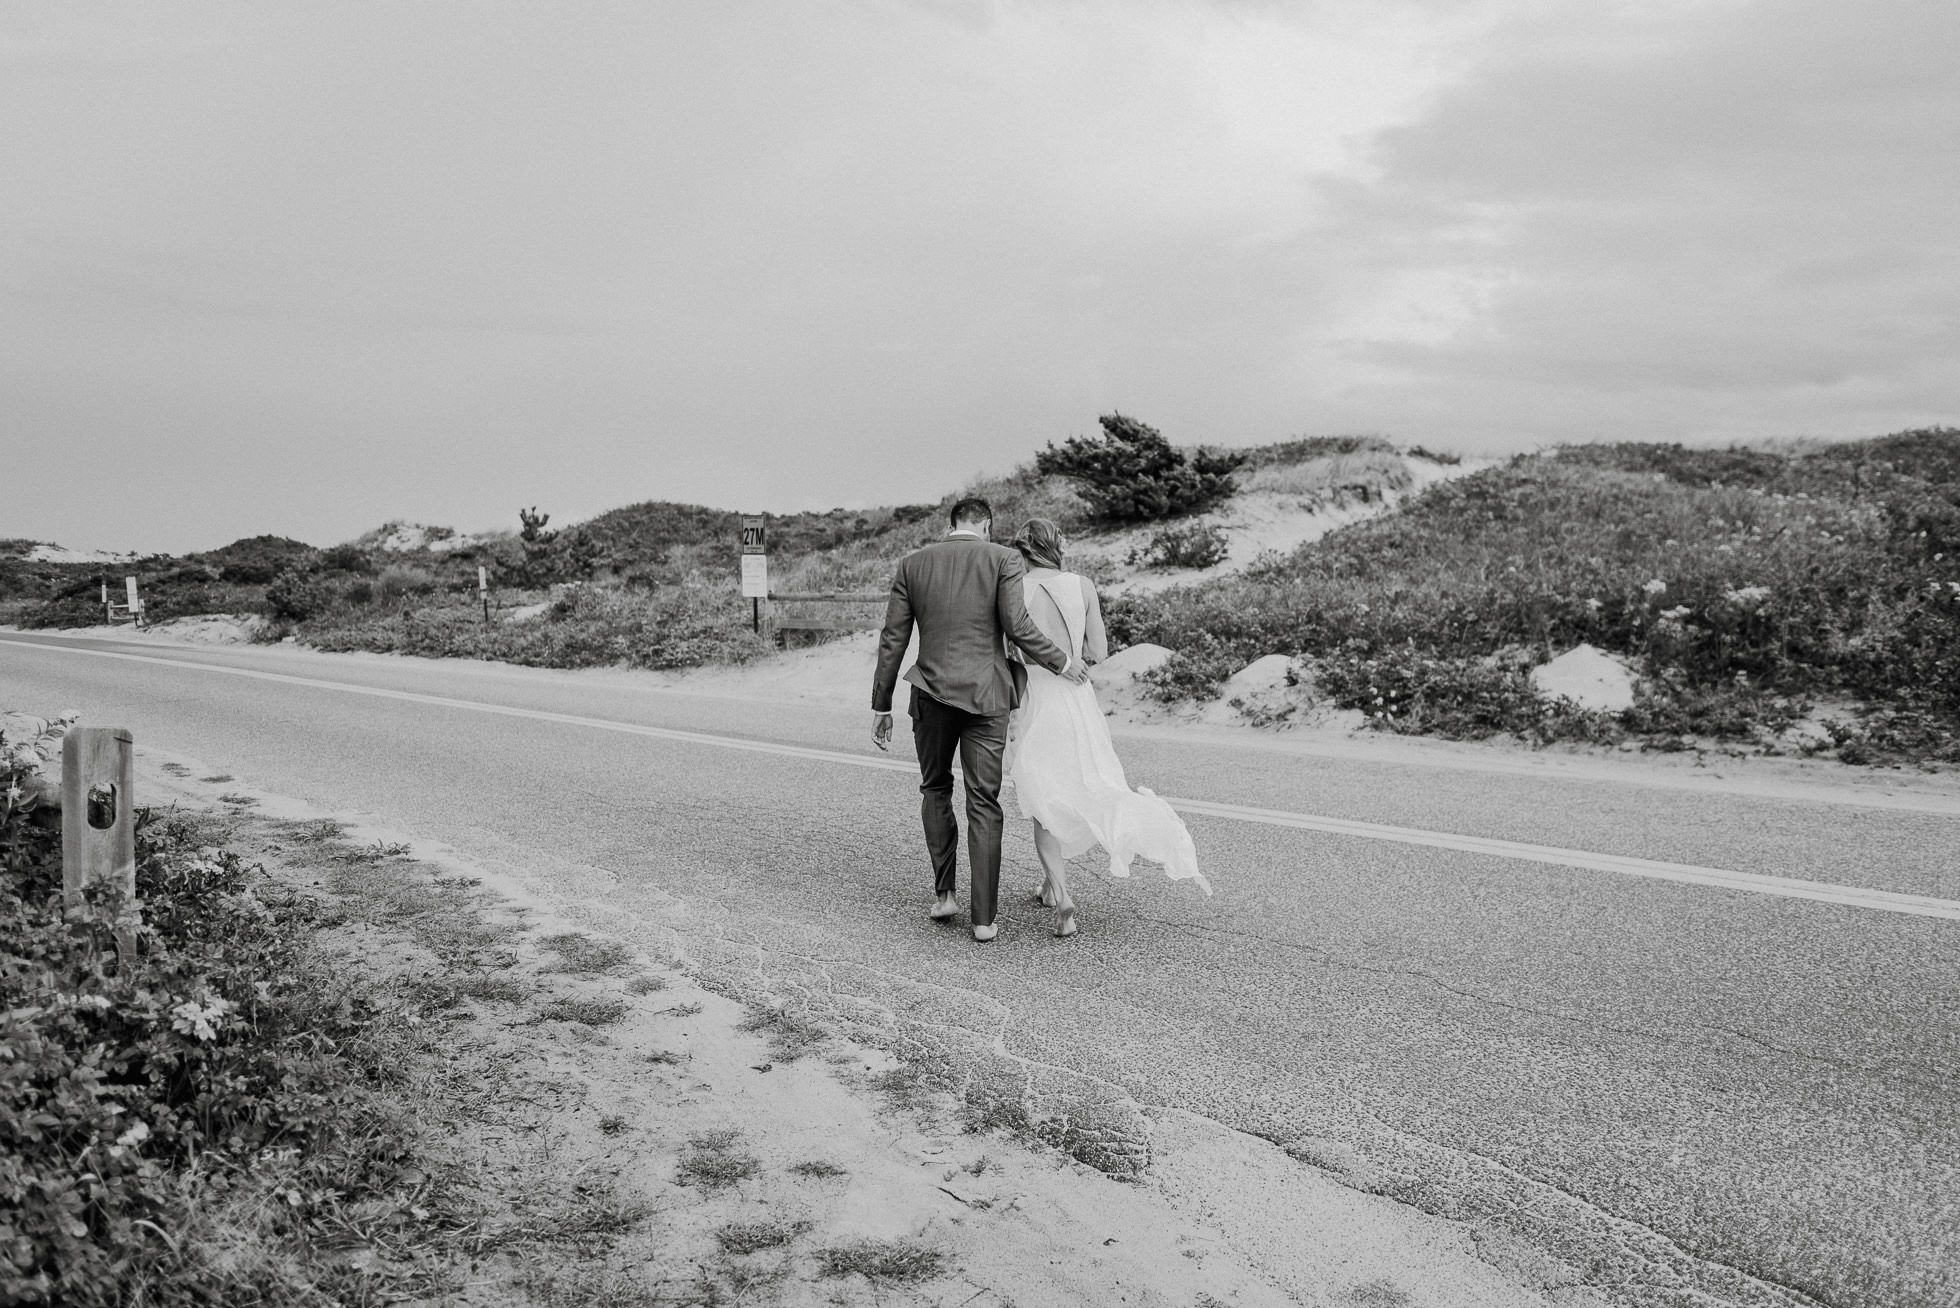 bride and groom Montauk beach wedding photographed by Traverse the Tides